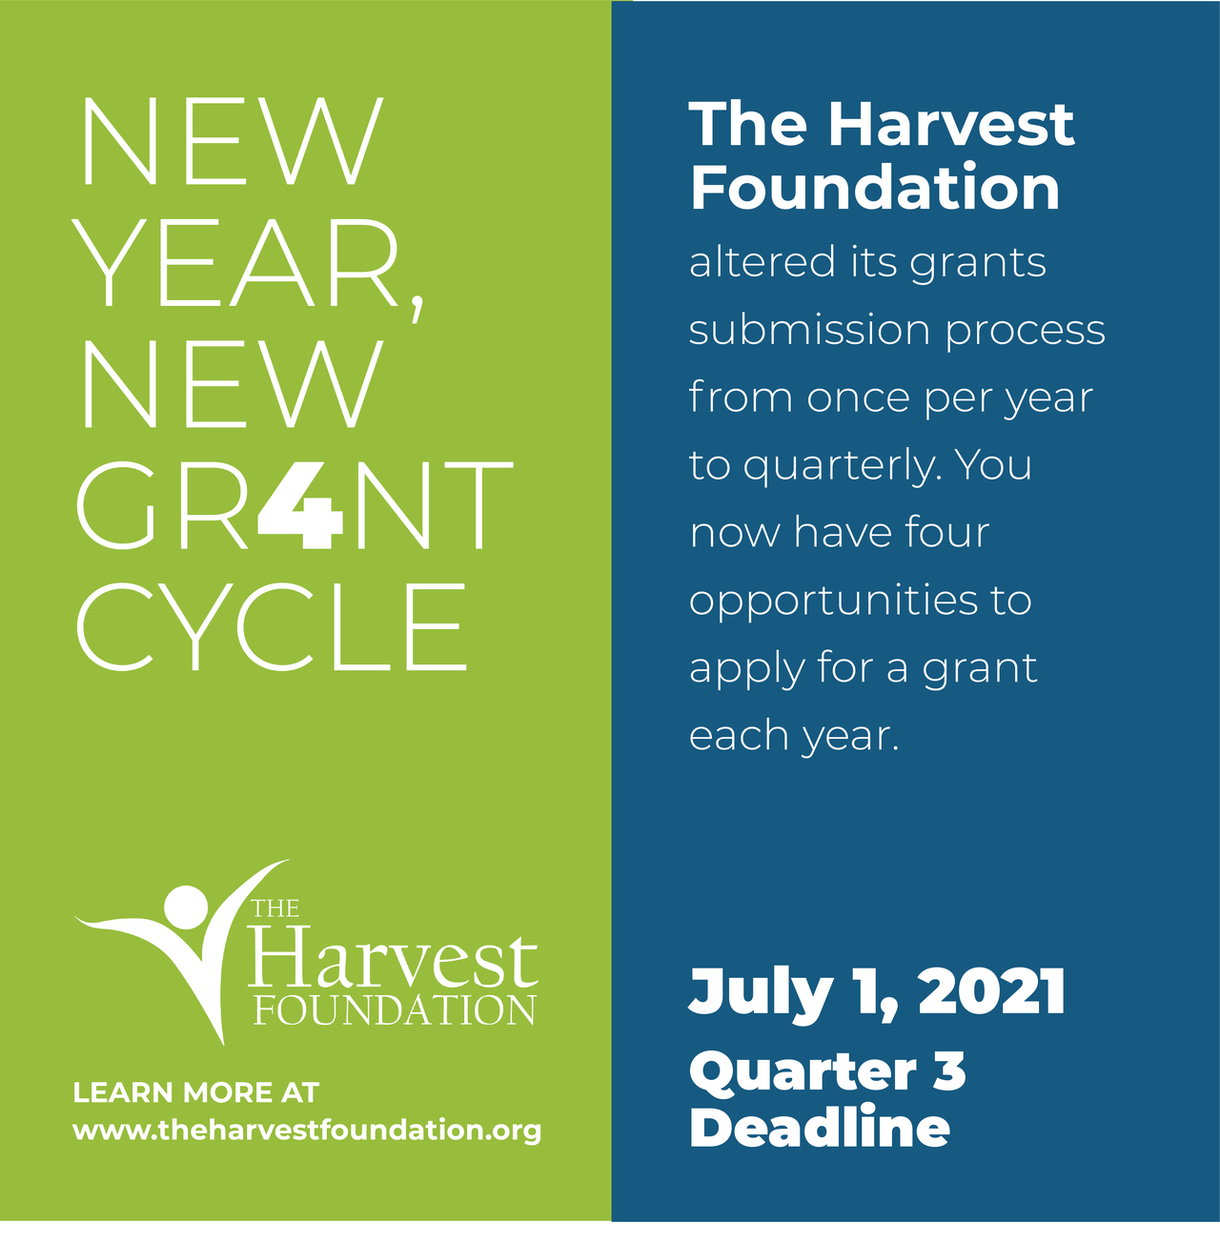 The Harvest Foundation 2nd Quarter Grant Cycle